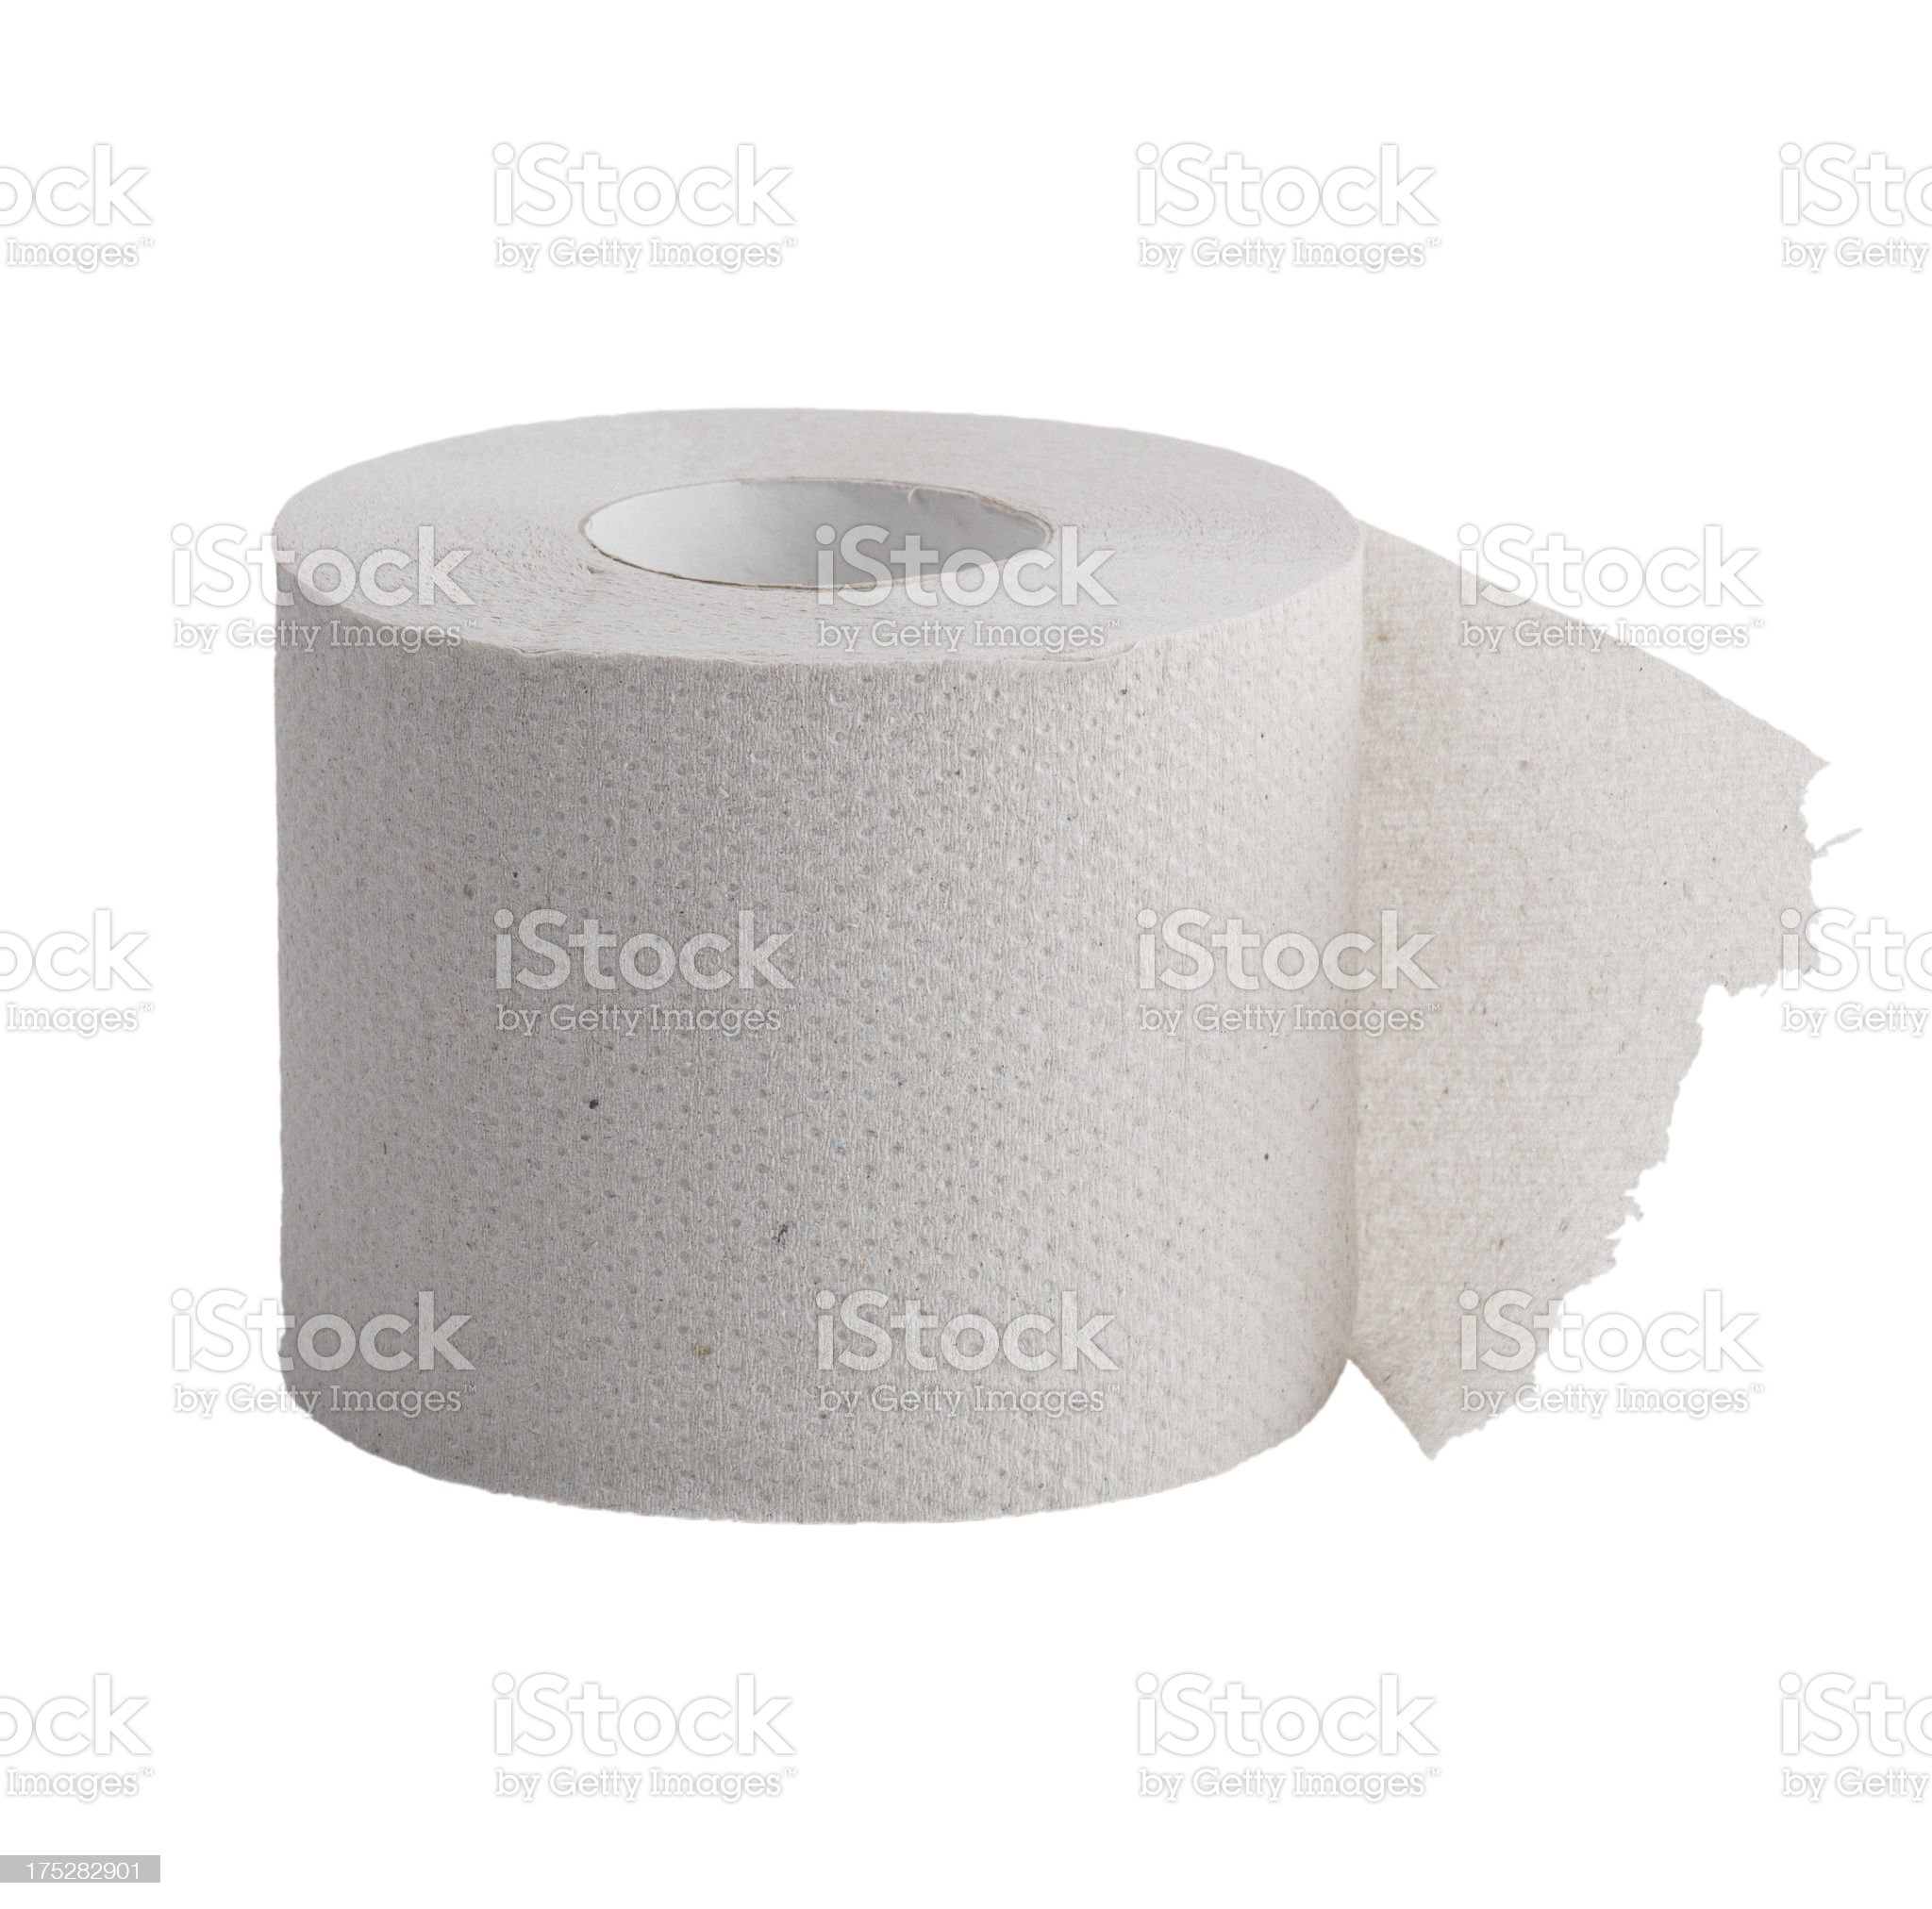 Perforated roll of toilet paper royalty-free stock photo